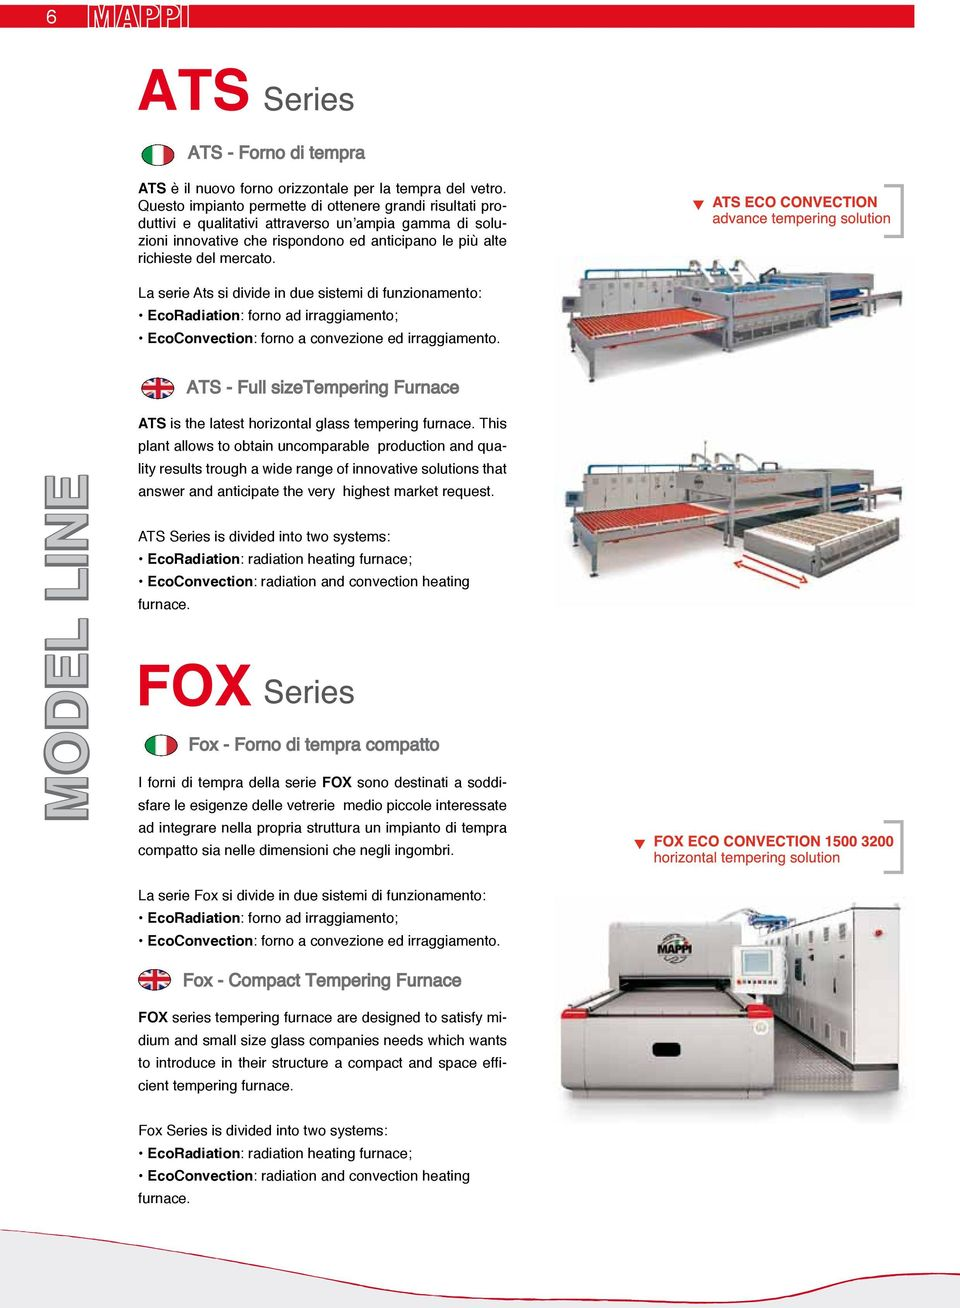 La serie Ats si divide in due sistemi di funzionamento: EcoRadiation: forno ad irraggiamento; EcoConvection: forno a convezione ed irraggiamento. ATS is the latest horizontal glass tempering furnace.